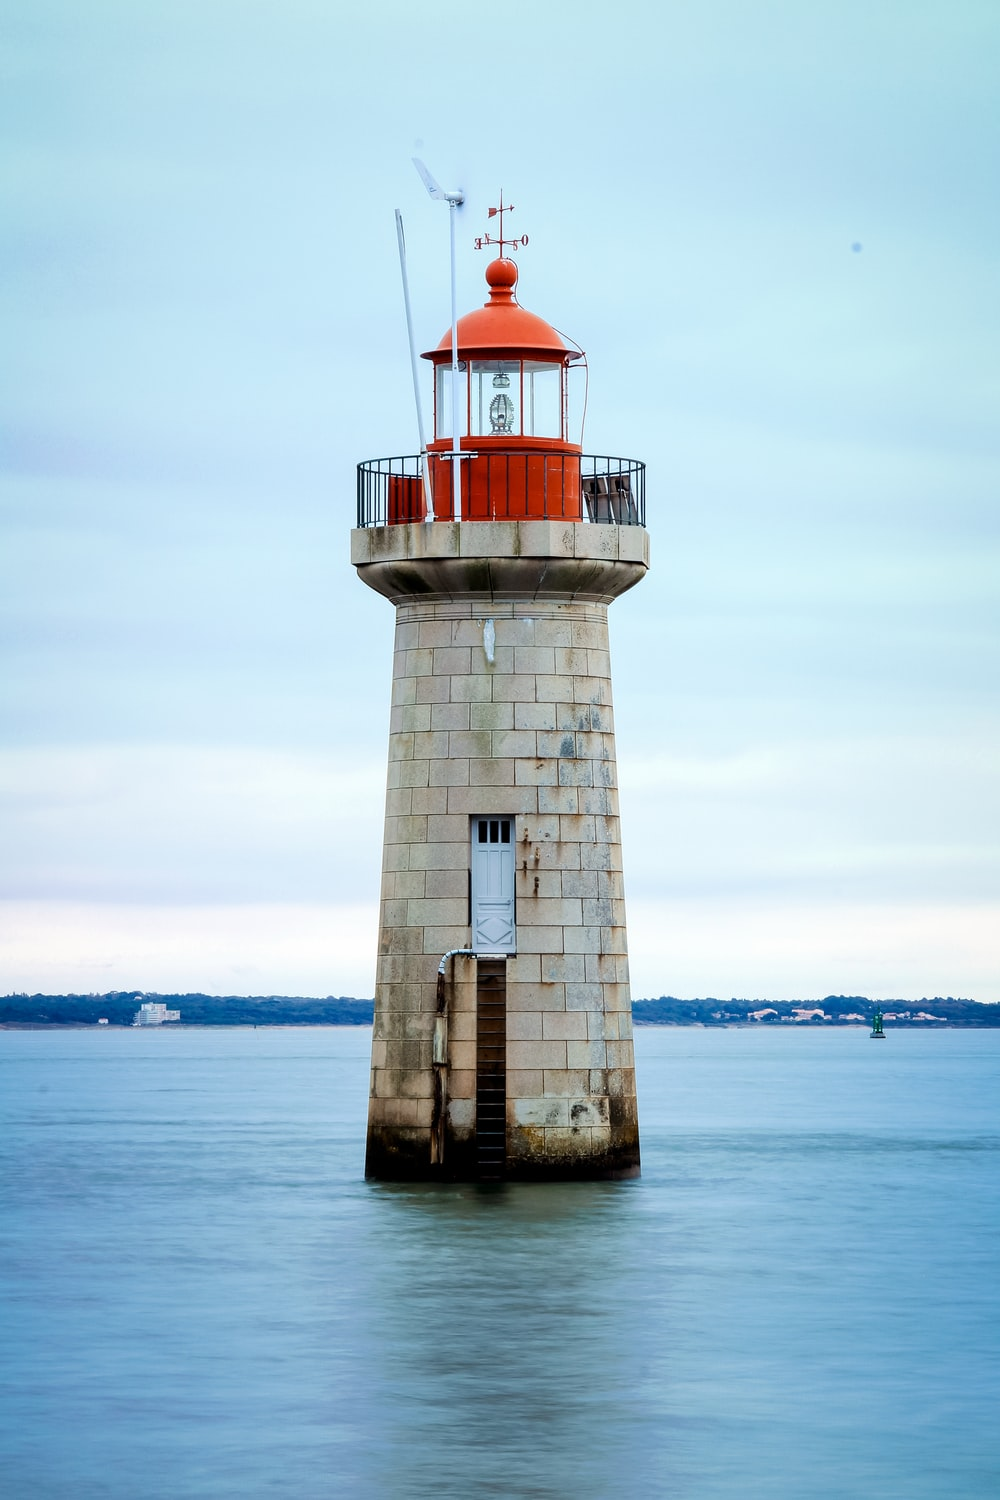 white and red lighthouse on body of water during daytime